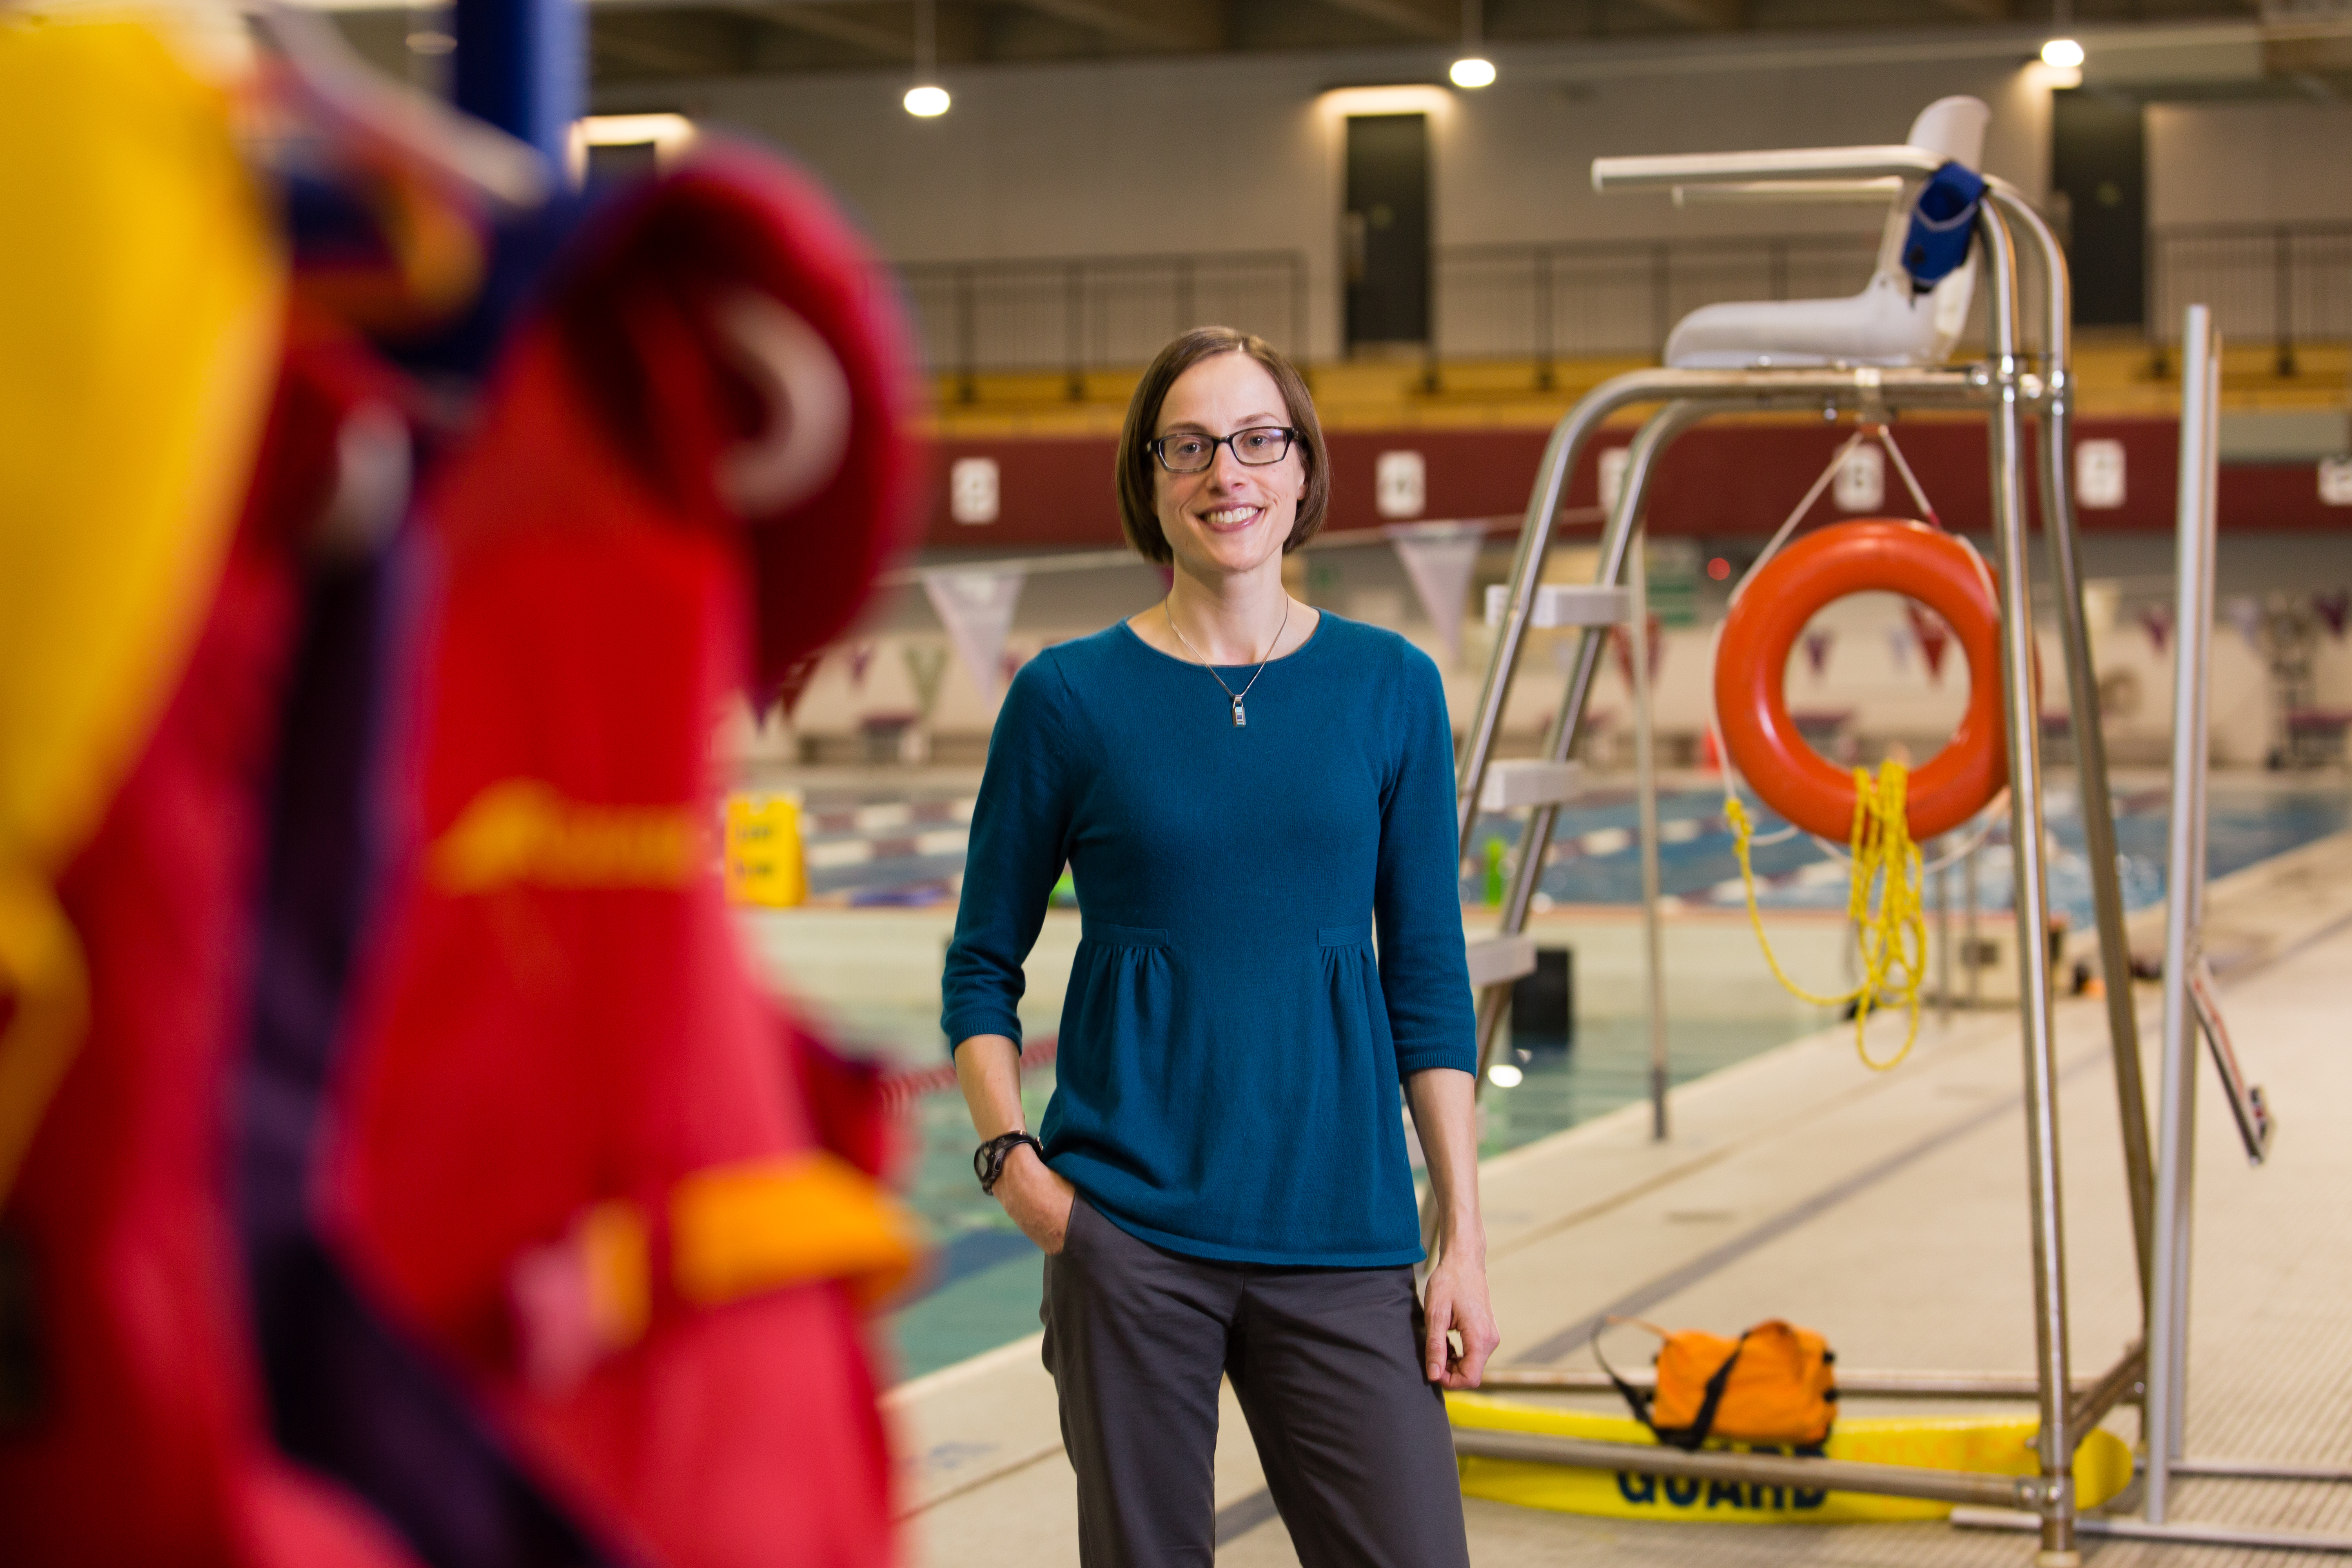 """""""So often organizations will say that the population in the North is too small to justify a unique intervention, or that it's too far away or too costly to do, but to me that's deeply problematic,"""" says the University of Ottawa's Audrey Giles. """"We really need to invest our time and resources in the places where the health inequity is most apparent."""" (Peter Thornton/ Courtesy University of Ottawa)"""